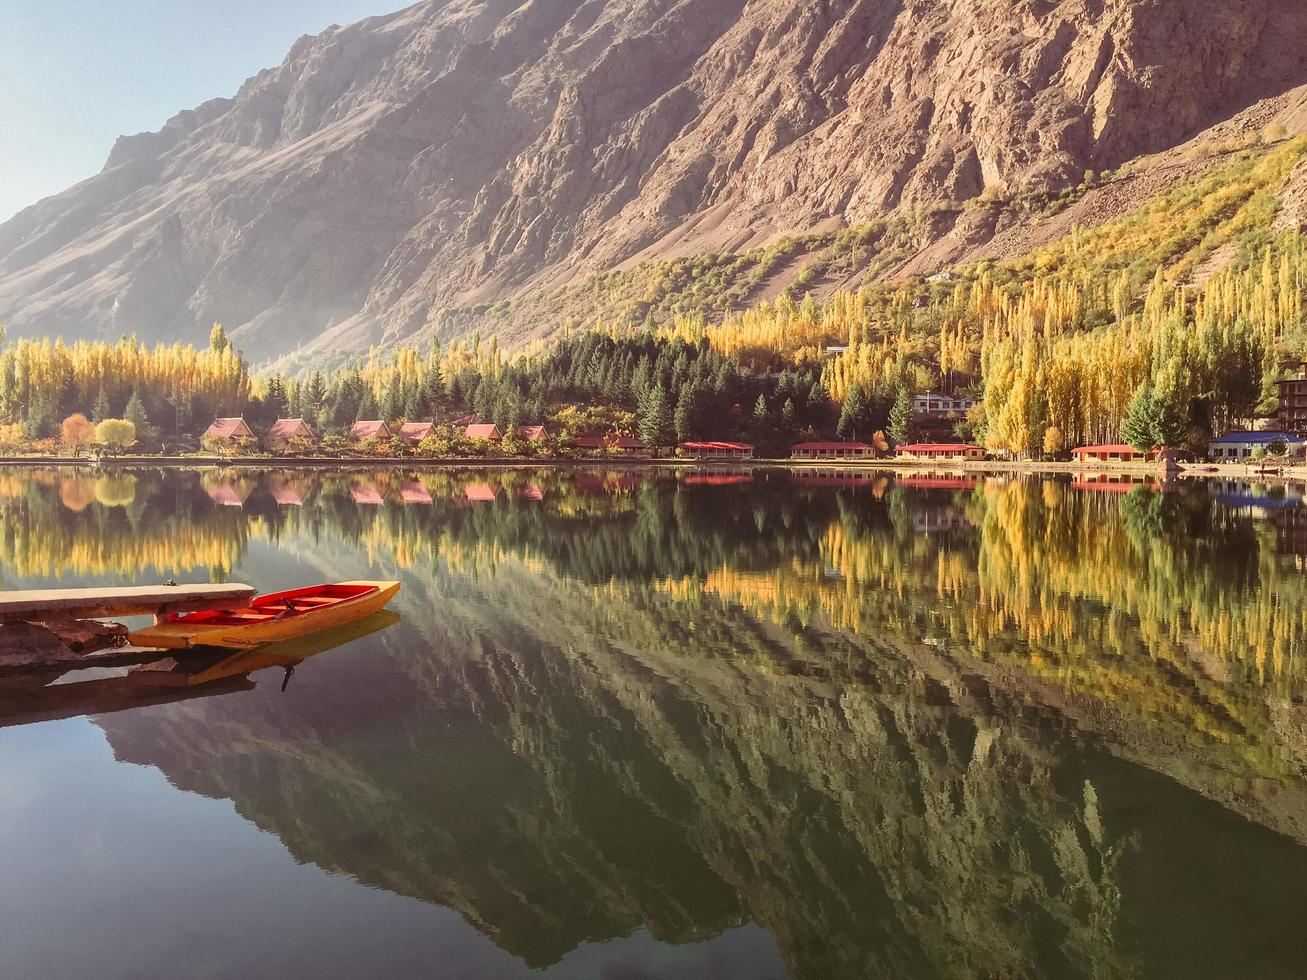 View of docked boat on still water with mountains in background photo